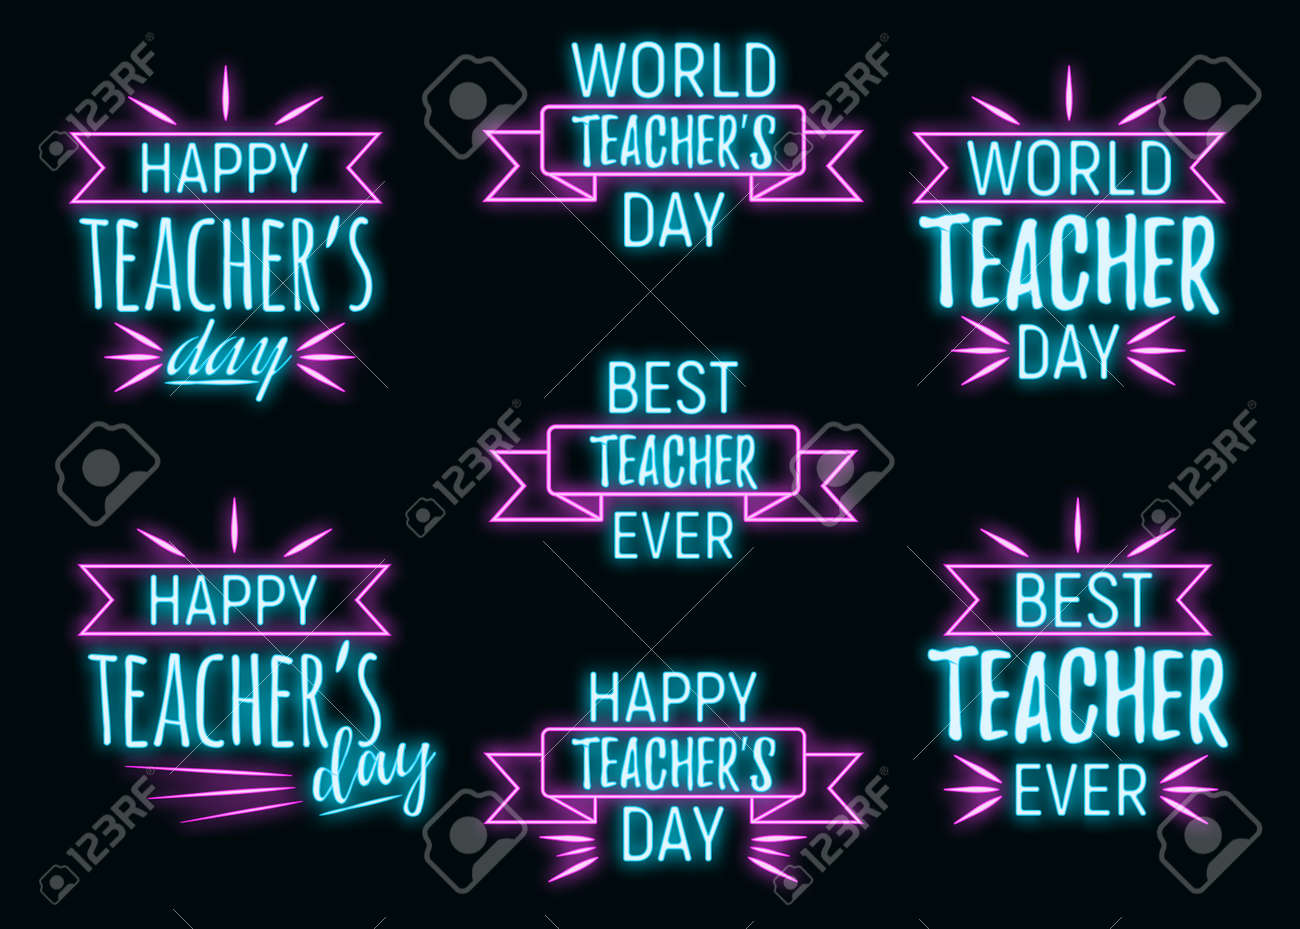 Concept neon best teacher day holiday font text quote, calligraphic inspiration celebration card flat vector illustration, decoration design label. World holiday, web banner internet page. - 166412696